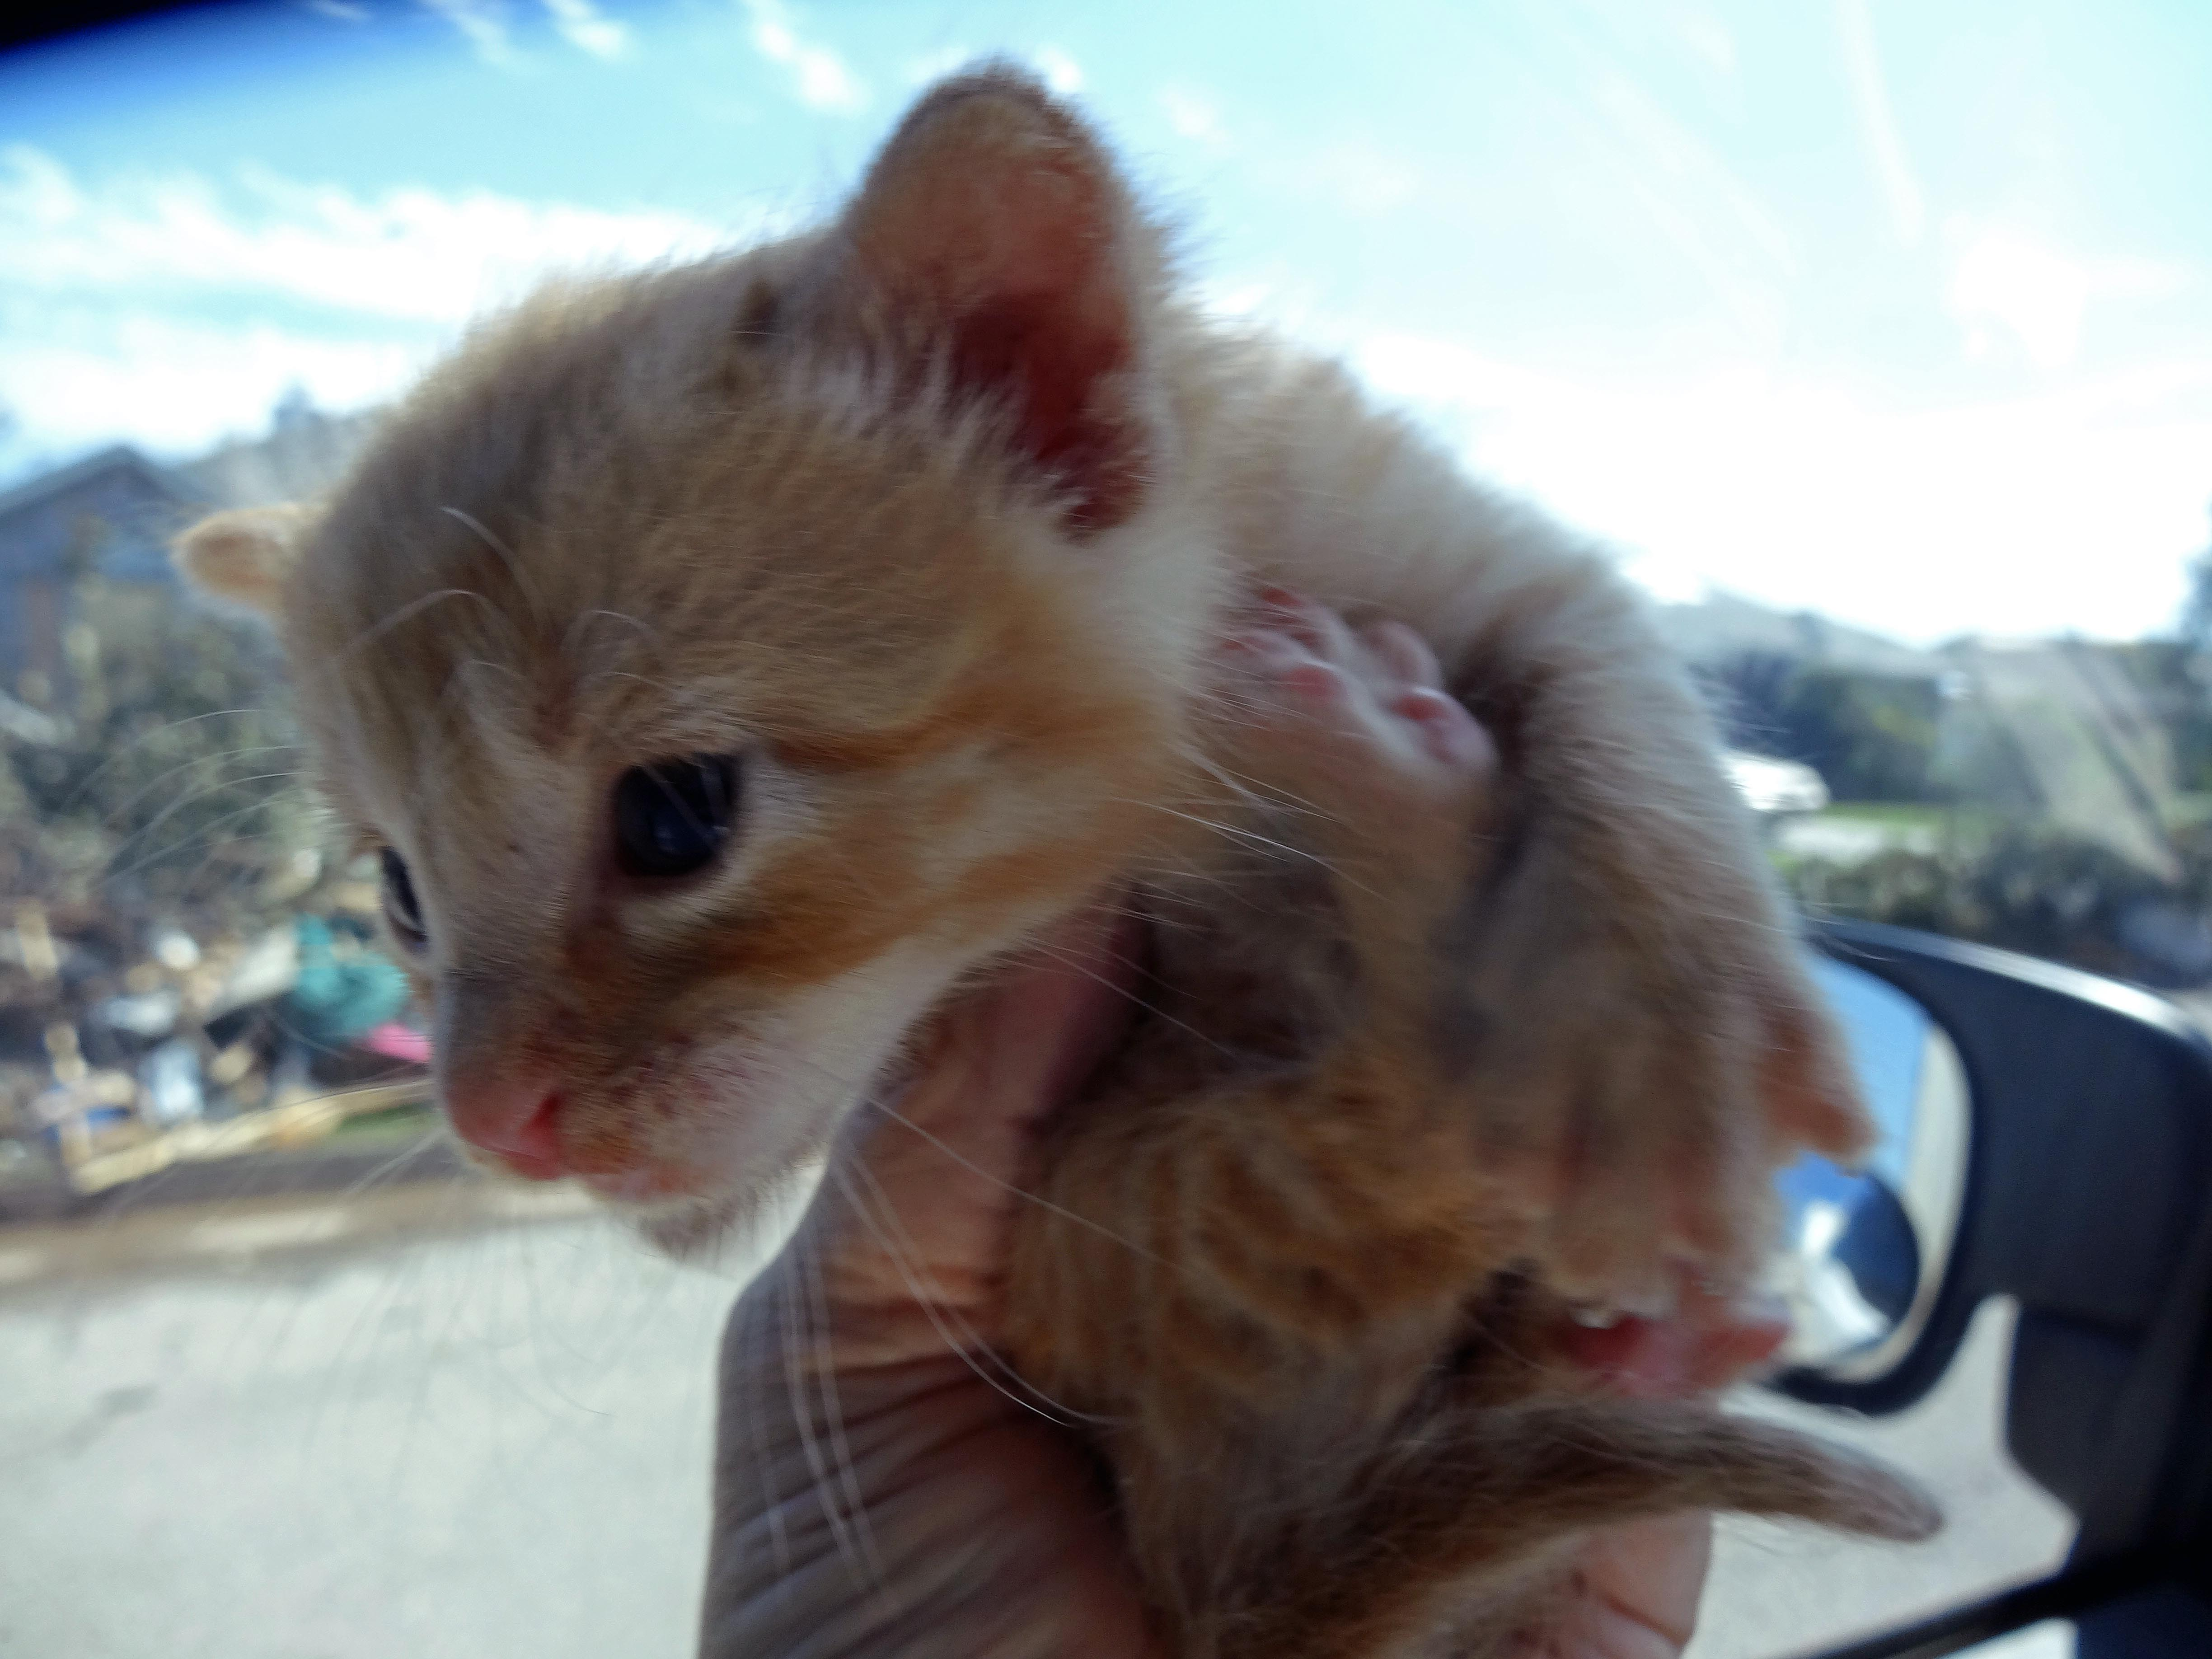 Kitten rescued from rubble